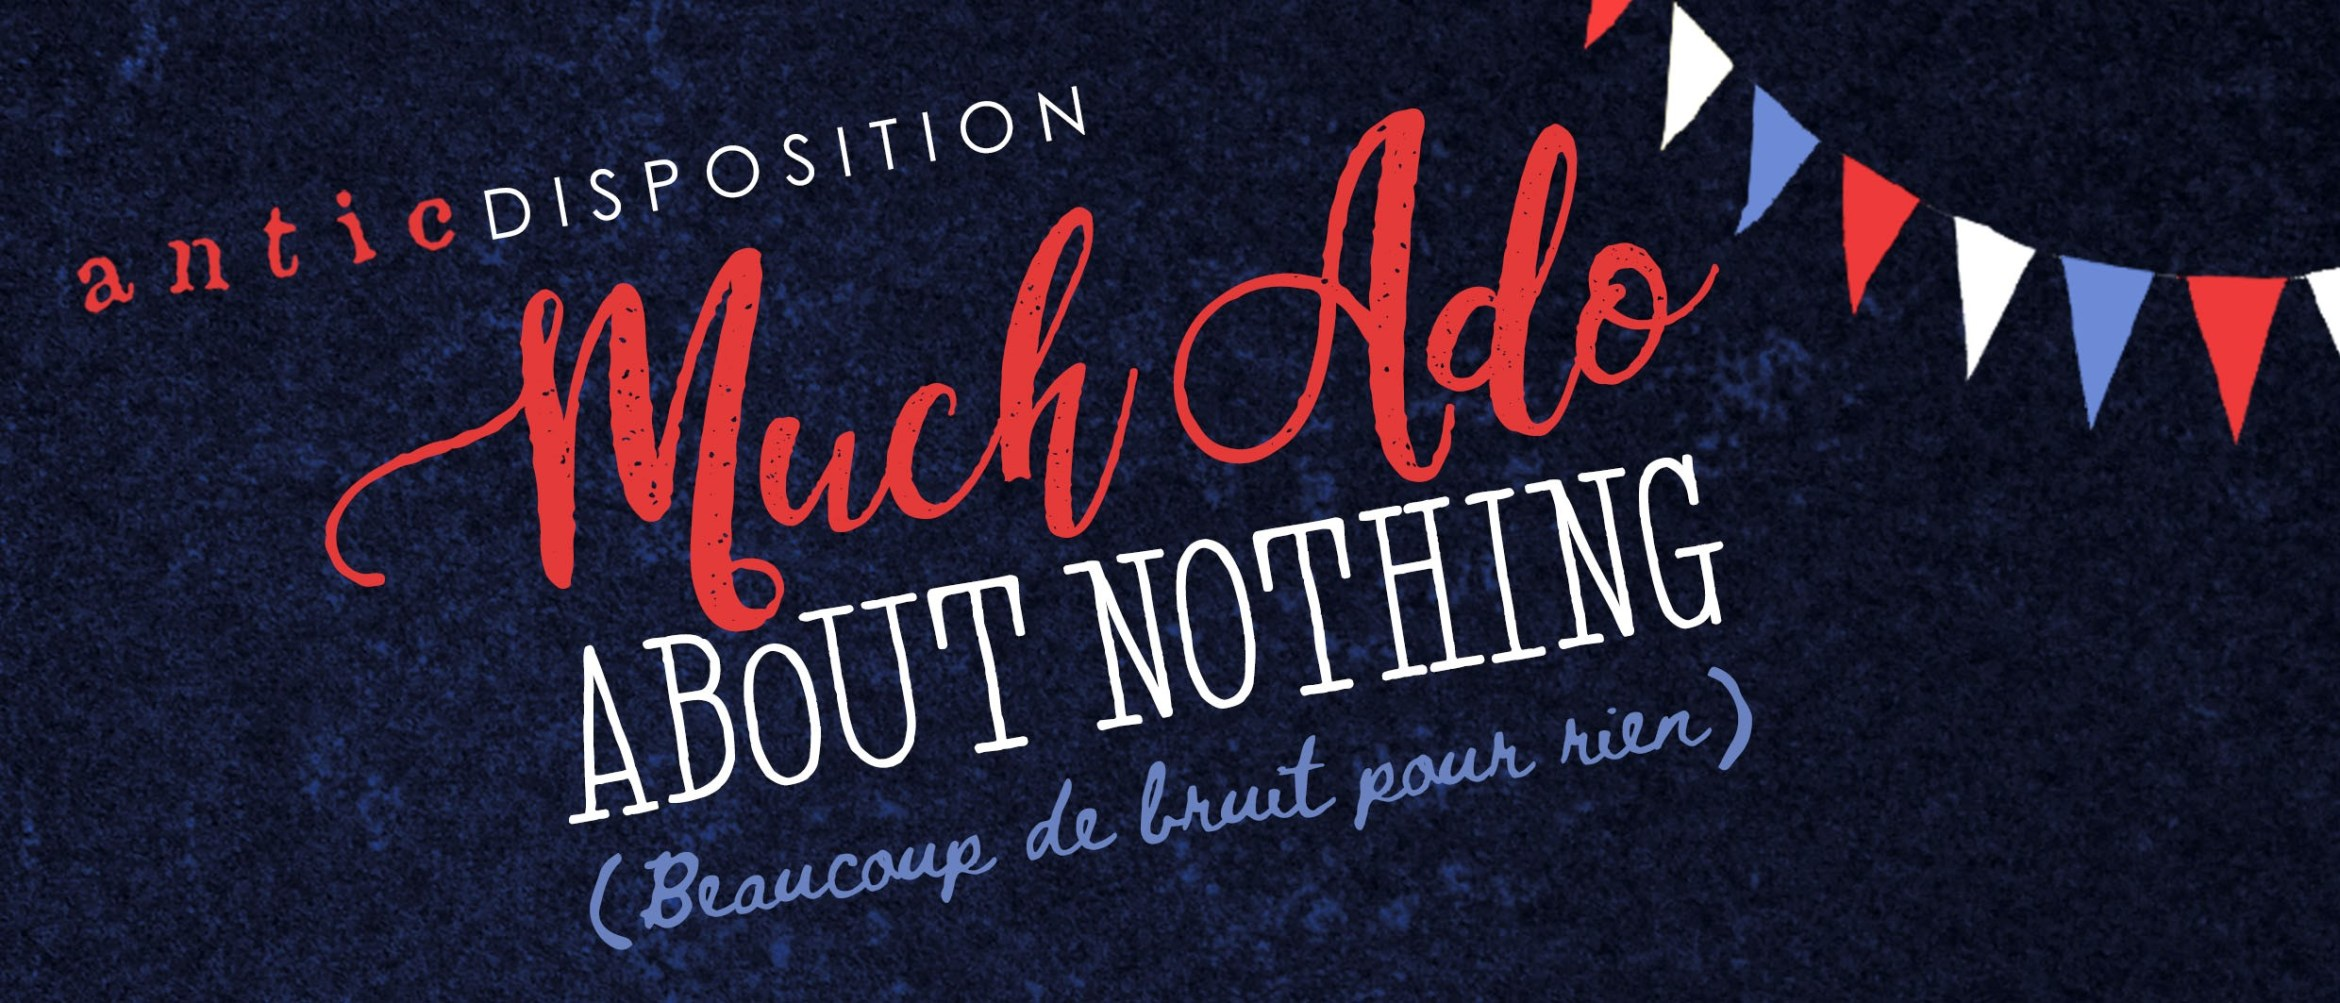 Antic Disposition present Much Ado About Nothing